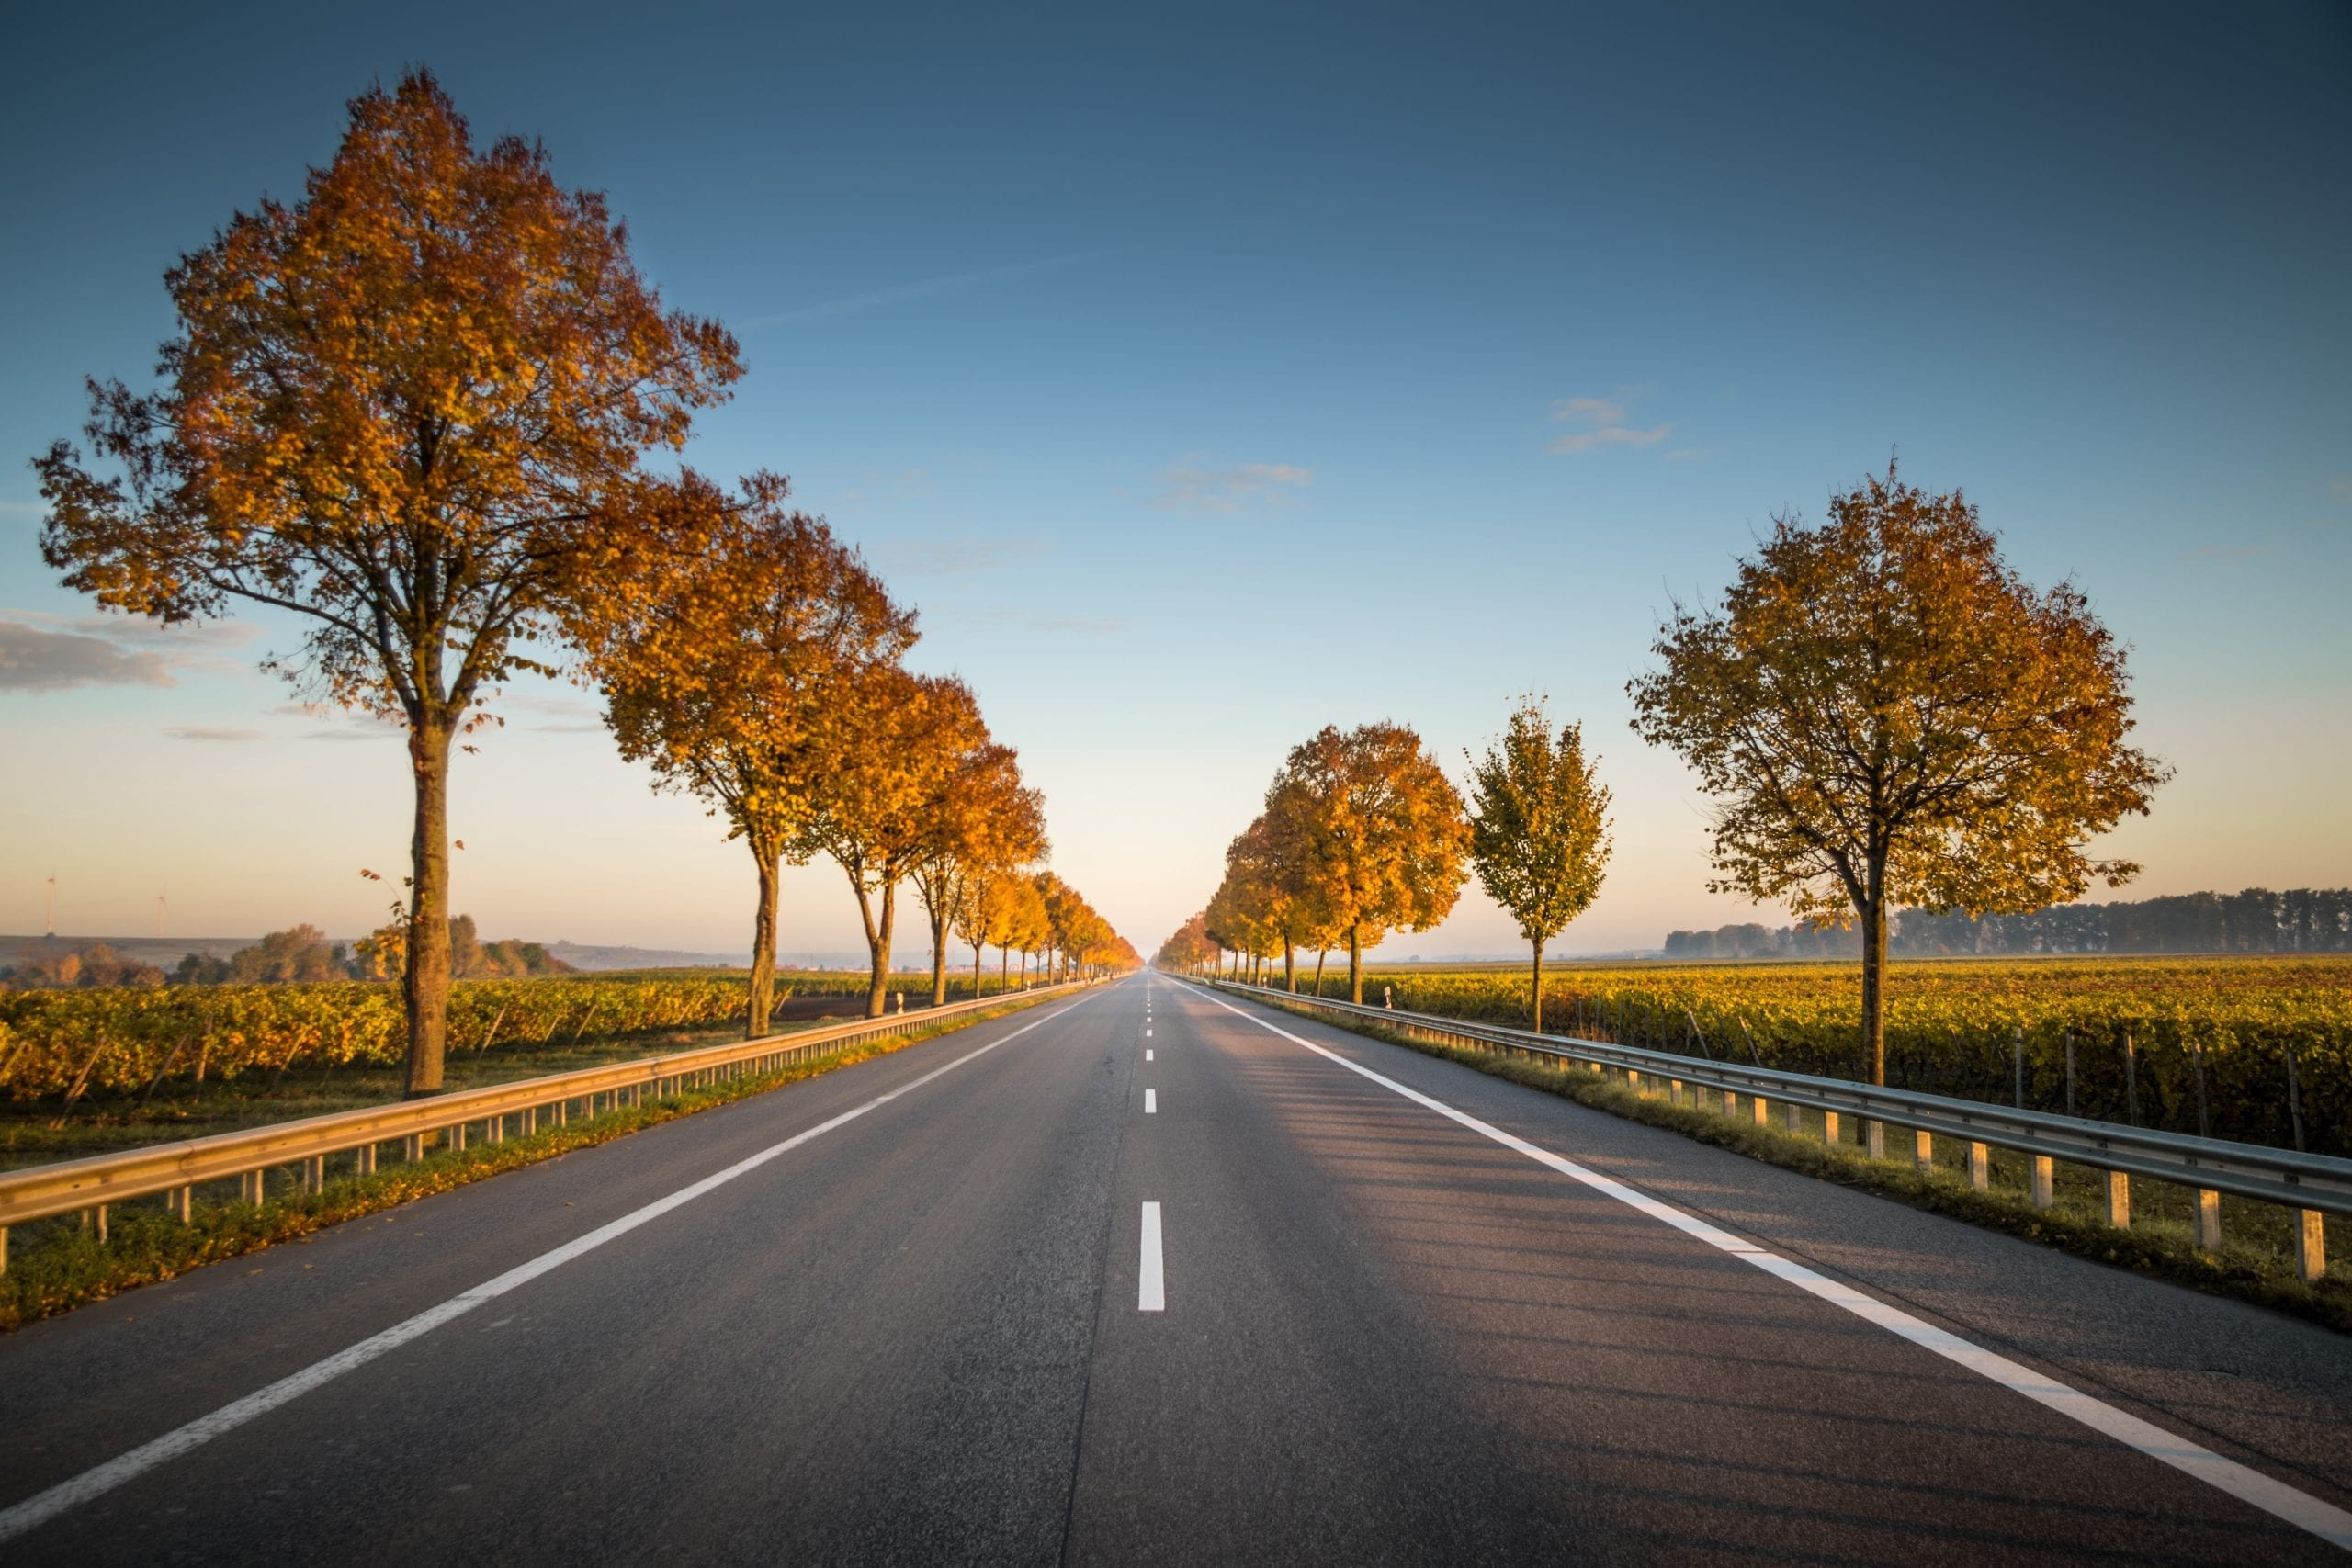 A long road signifying ecommerce progression